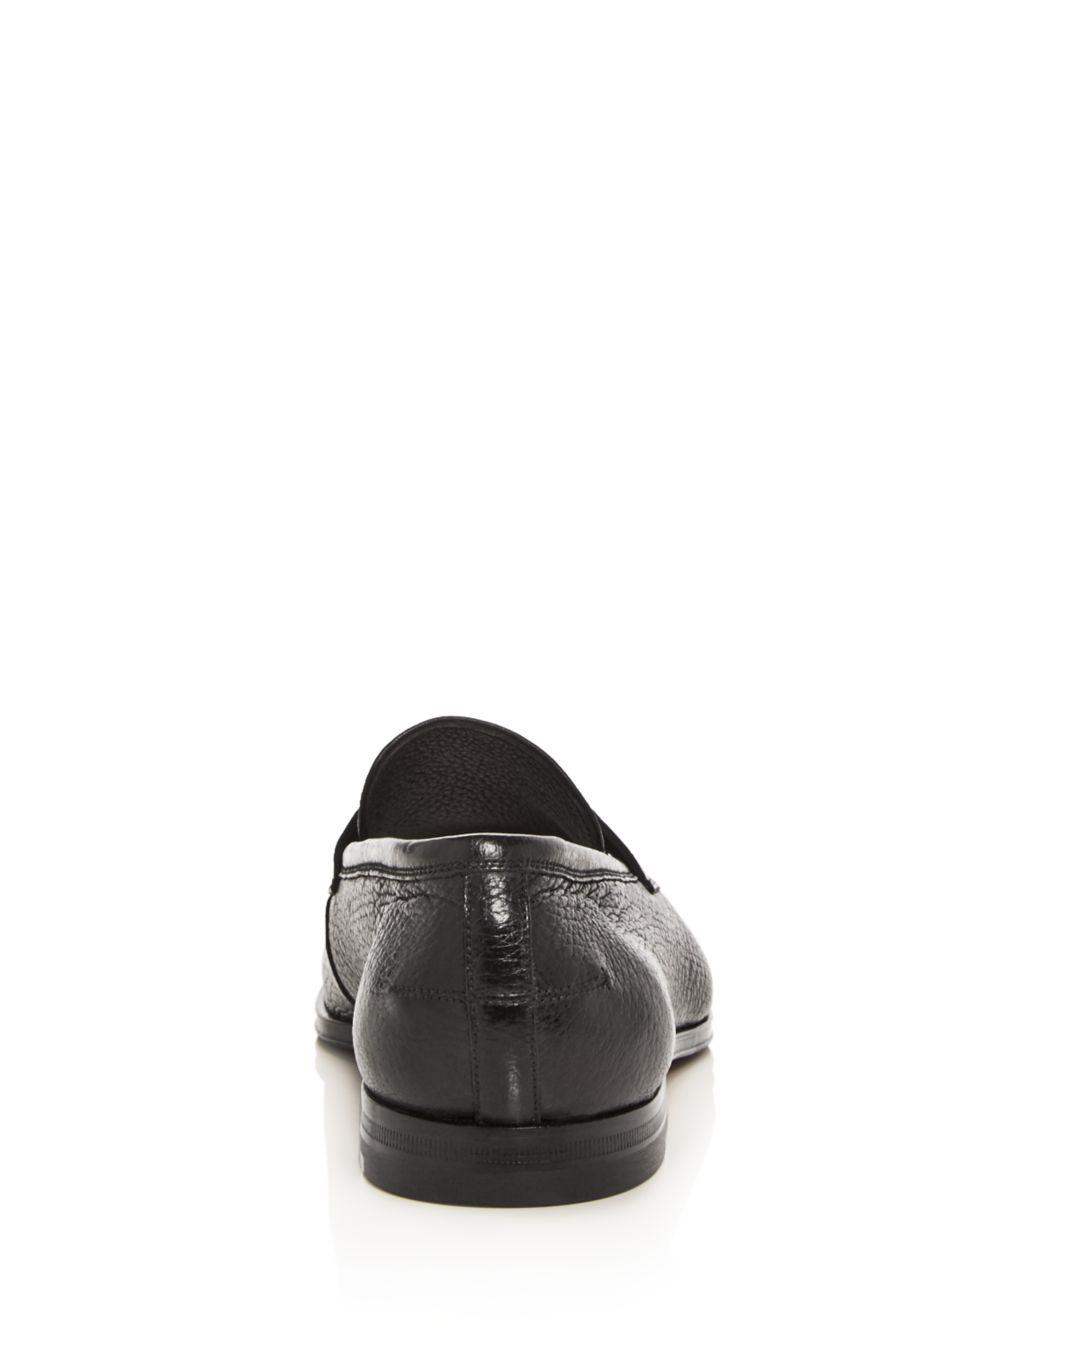 ef4a0c6da34 Lyst - Bally Men s Webb Leather Penny Loafers in Black for Men